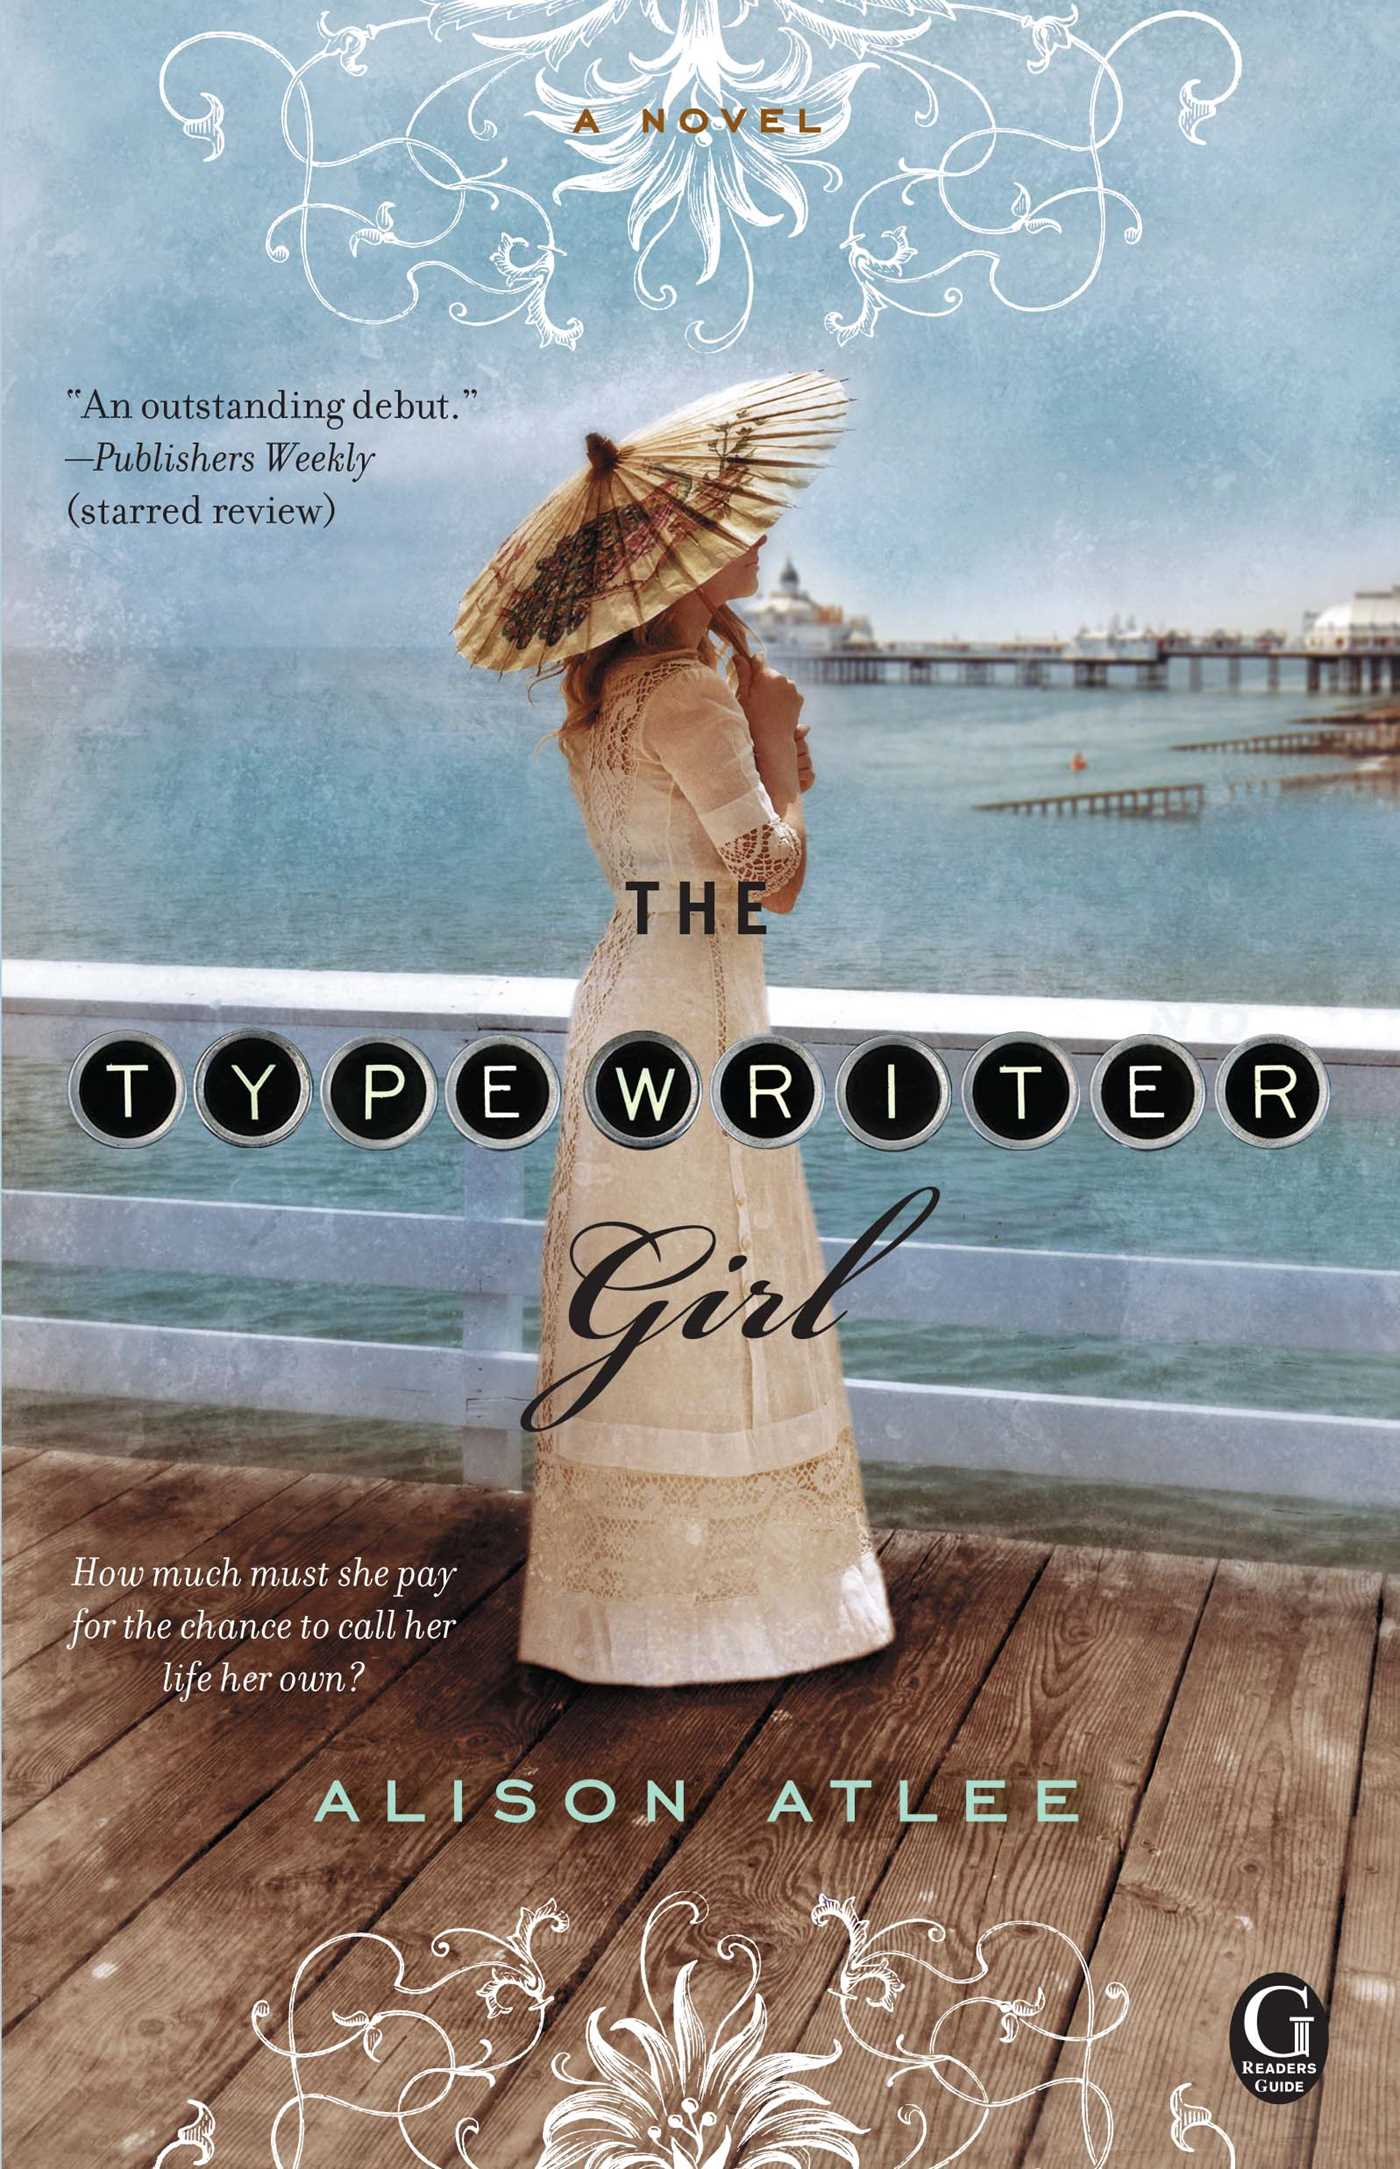 The typewriter girl 9781451673258 hr